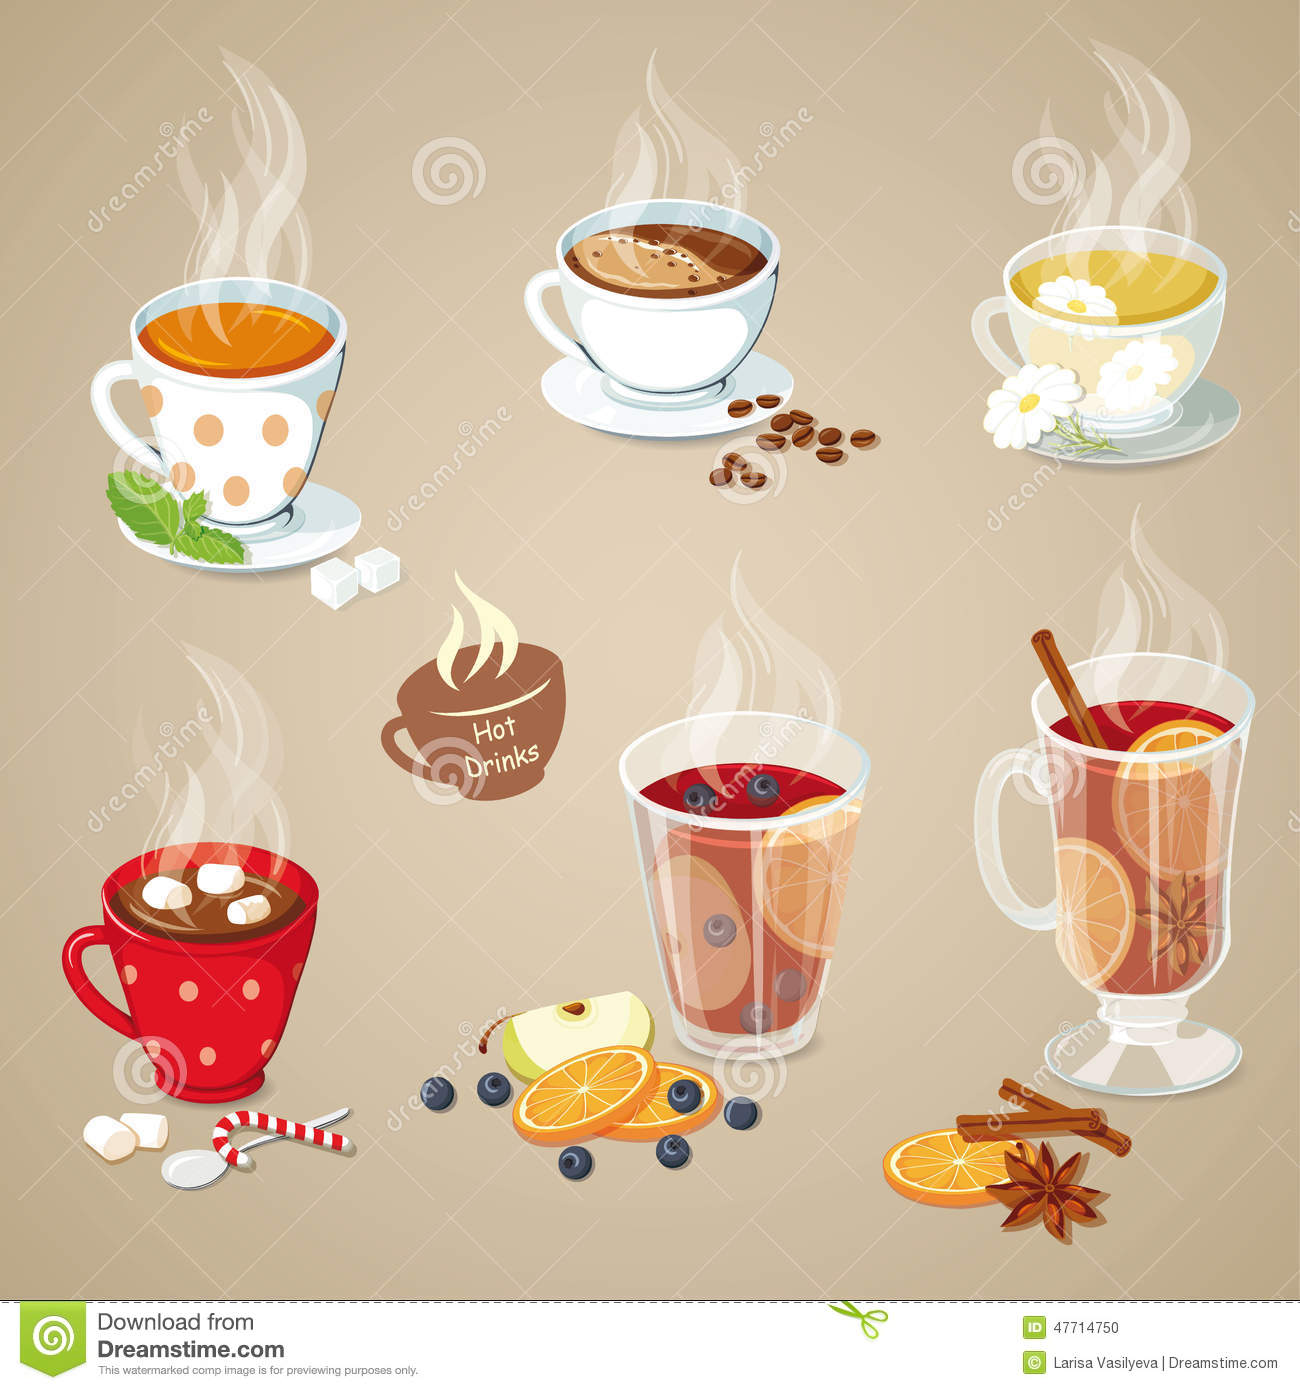 Hot drinks icons set stock vector. Illustration of punch.